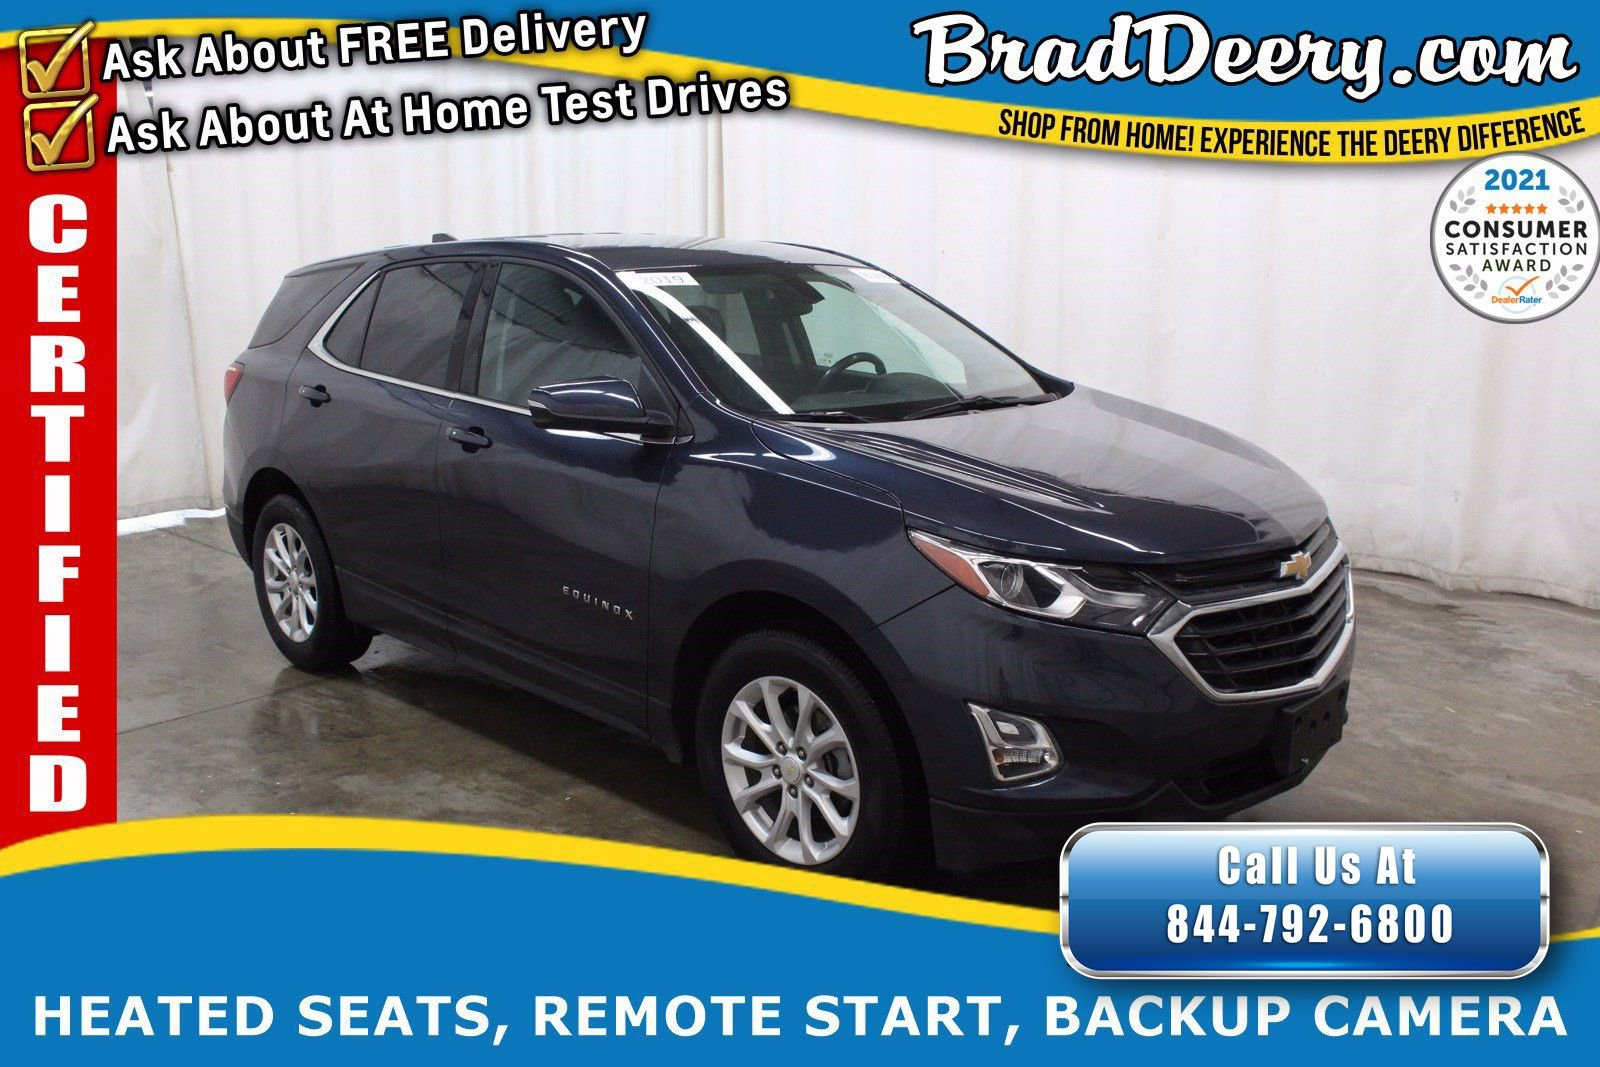 2019 Chevrolet Equinox LT ** GM CERTIFIED ** w/ Heated Seats, Remote Start, Back-Up Camera & Power Liftgate